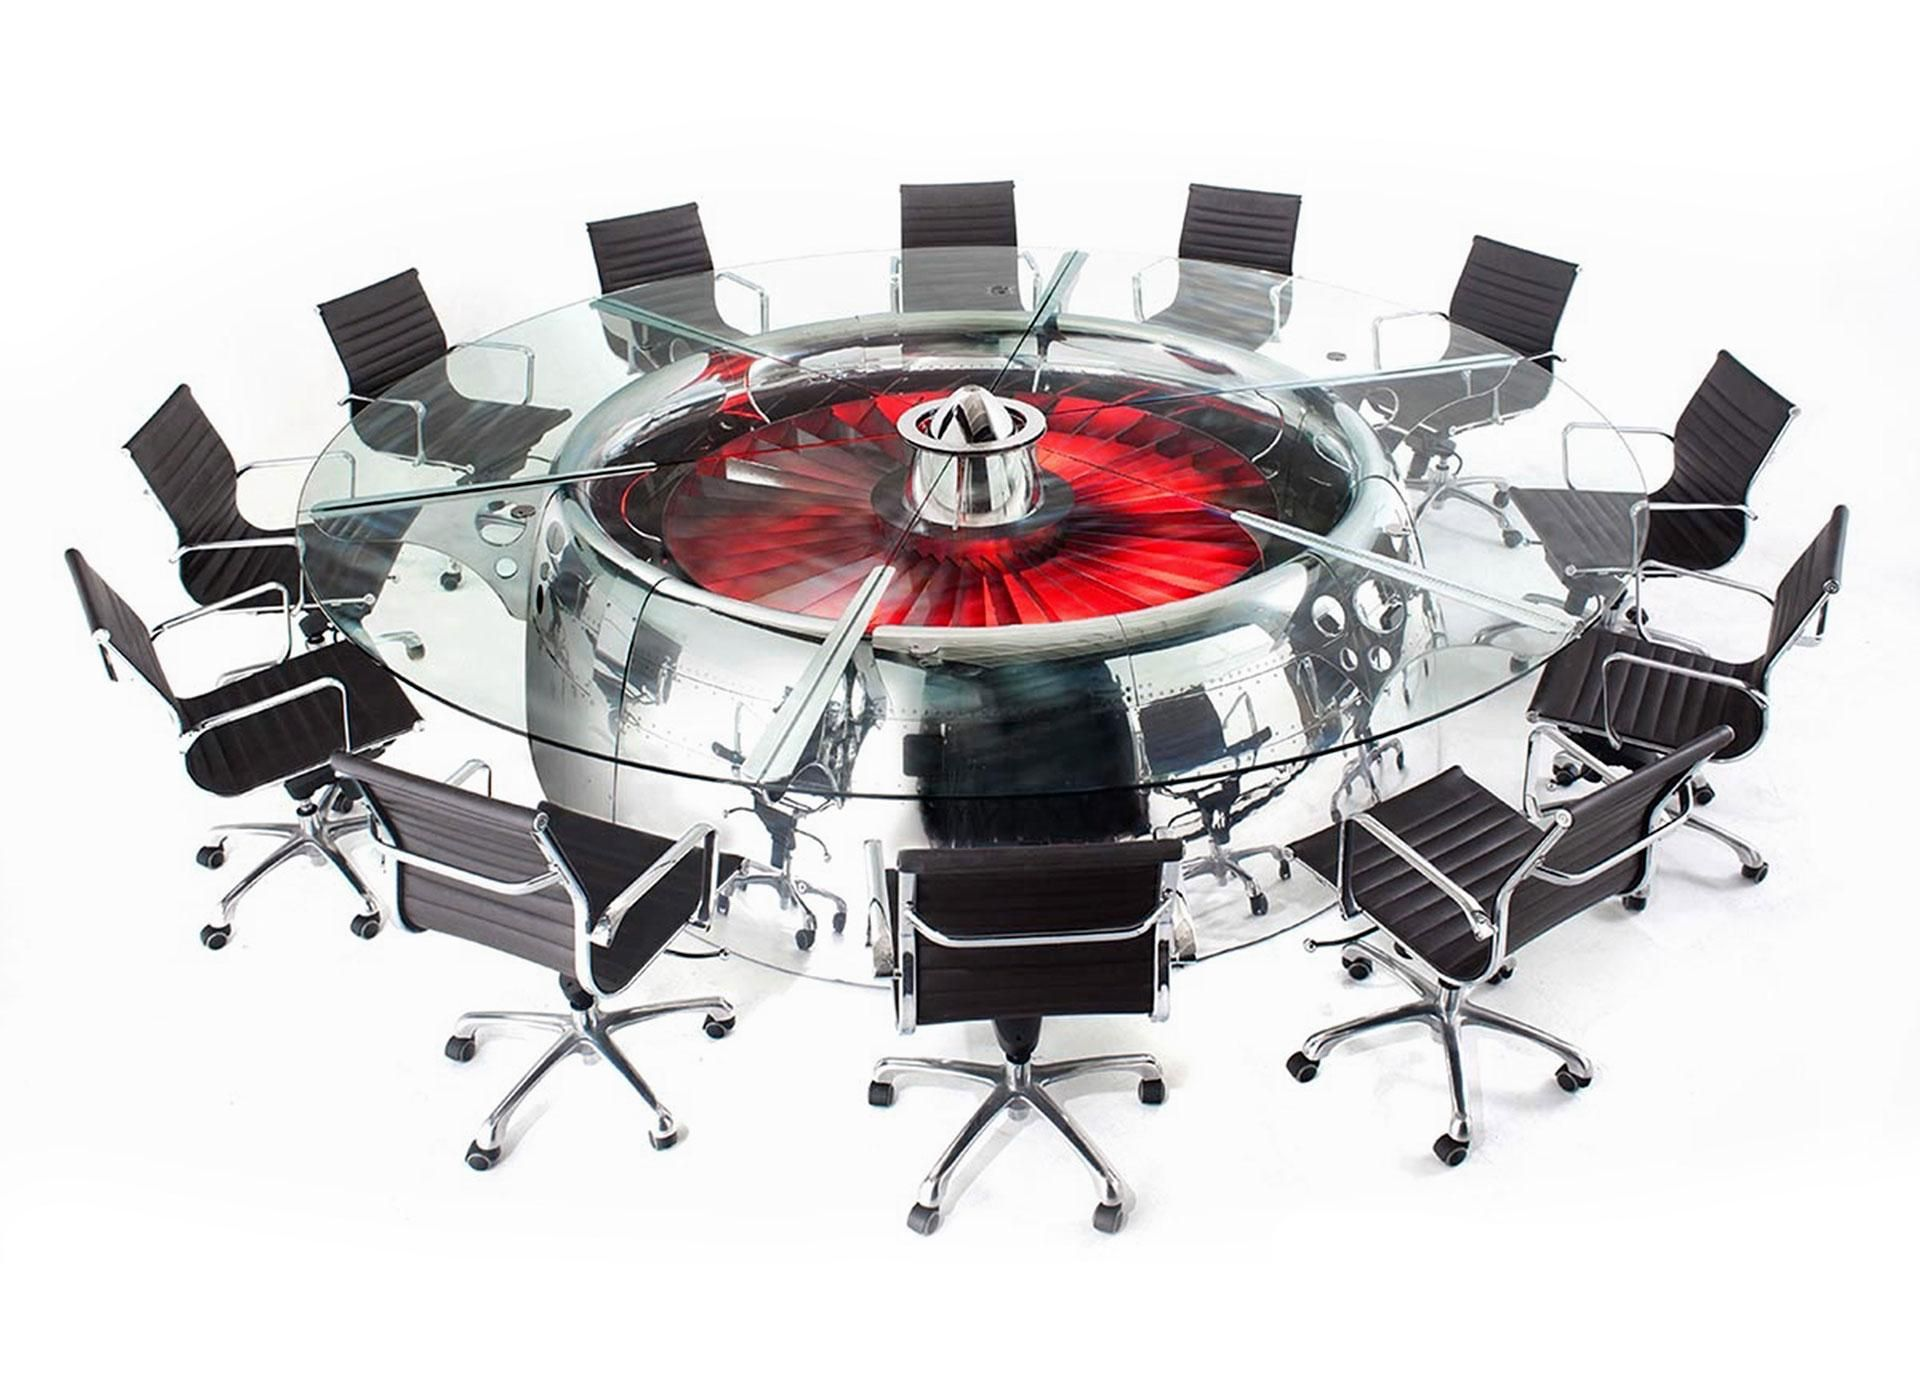 boeing 747 jumbo jet engine turned into conference table | huge